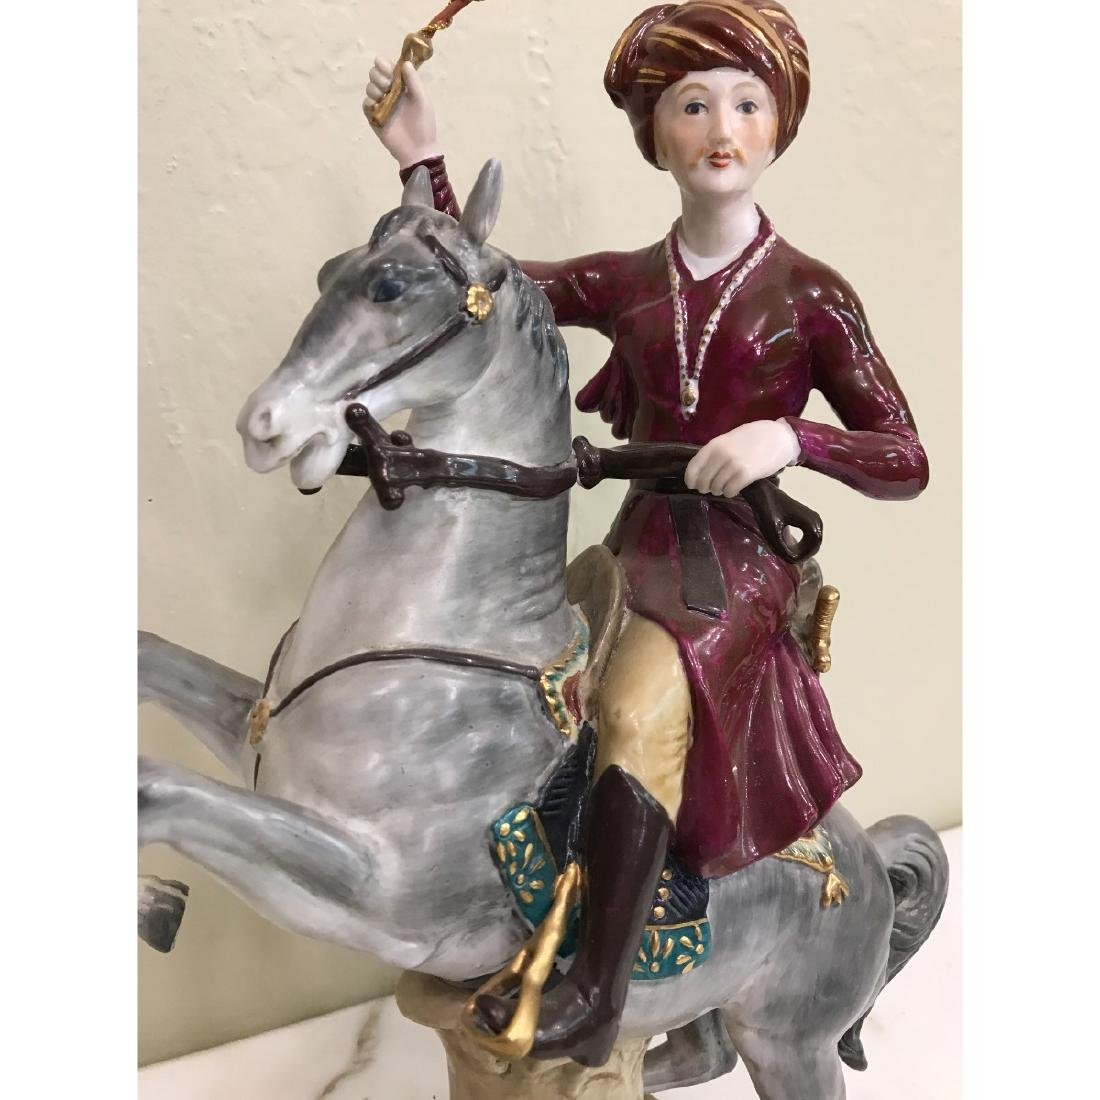 Porcelain Statue of Soldier on Horse - 4